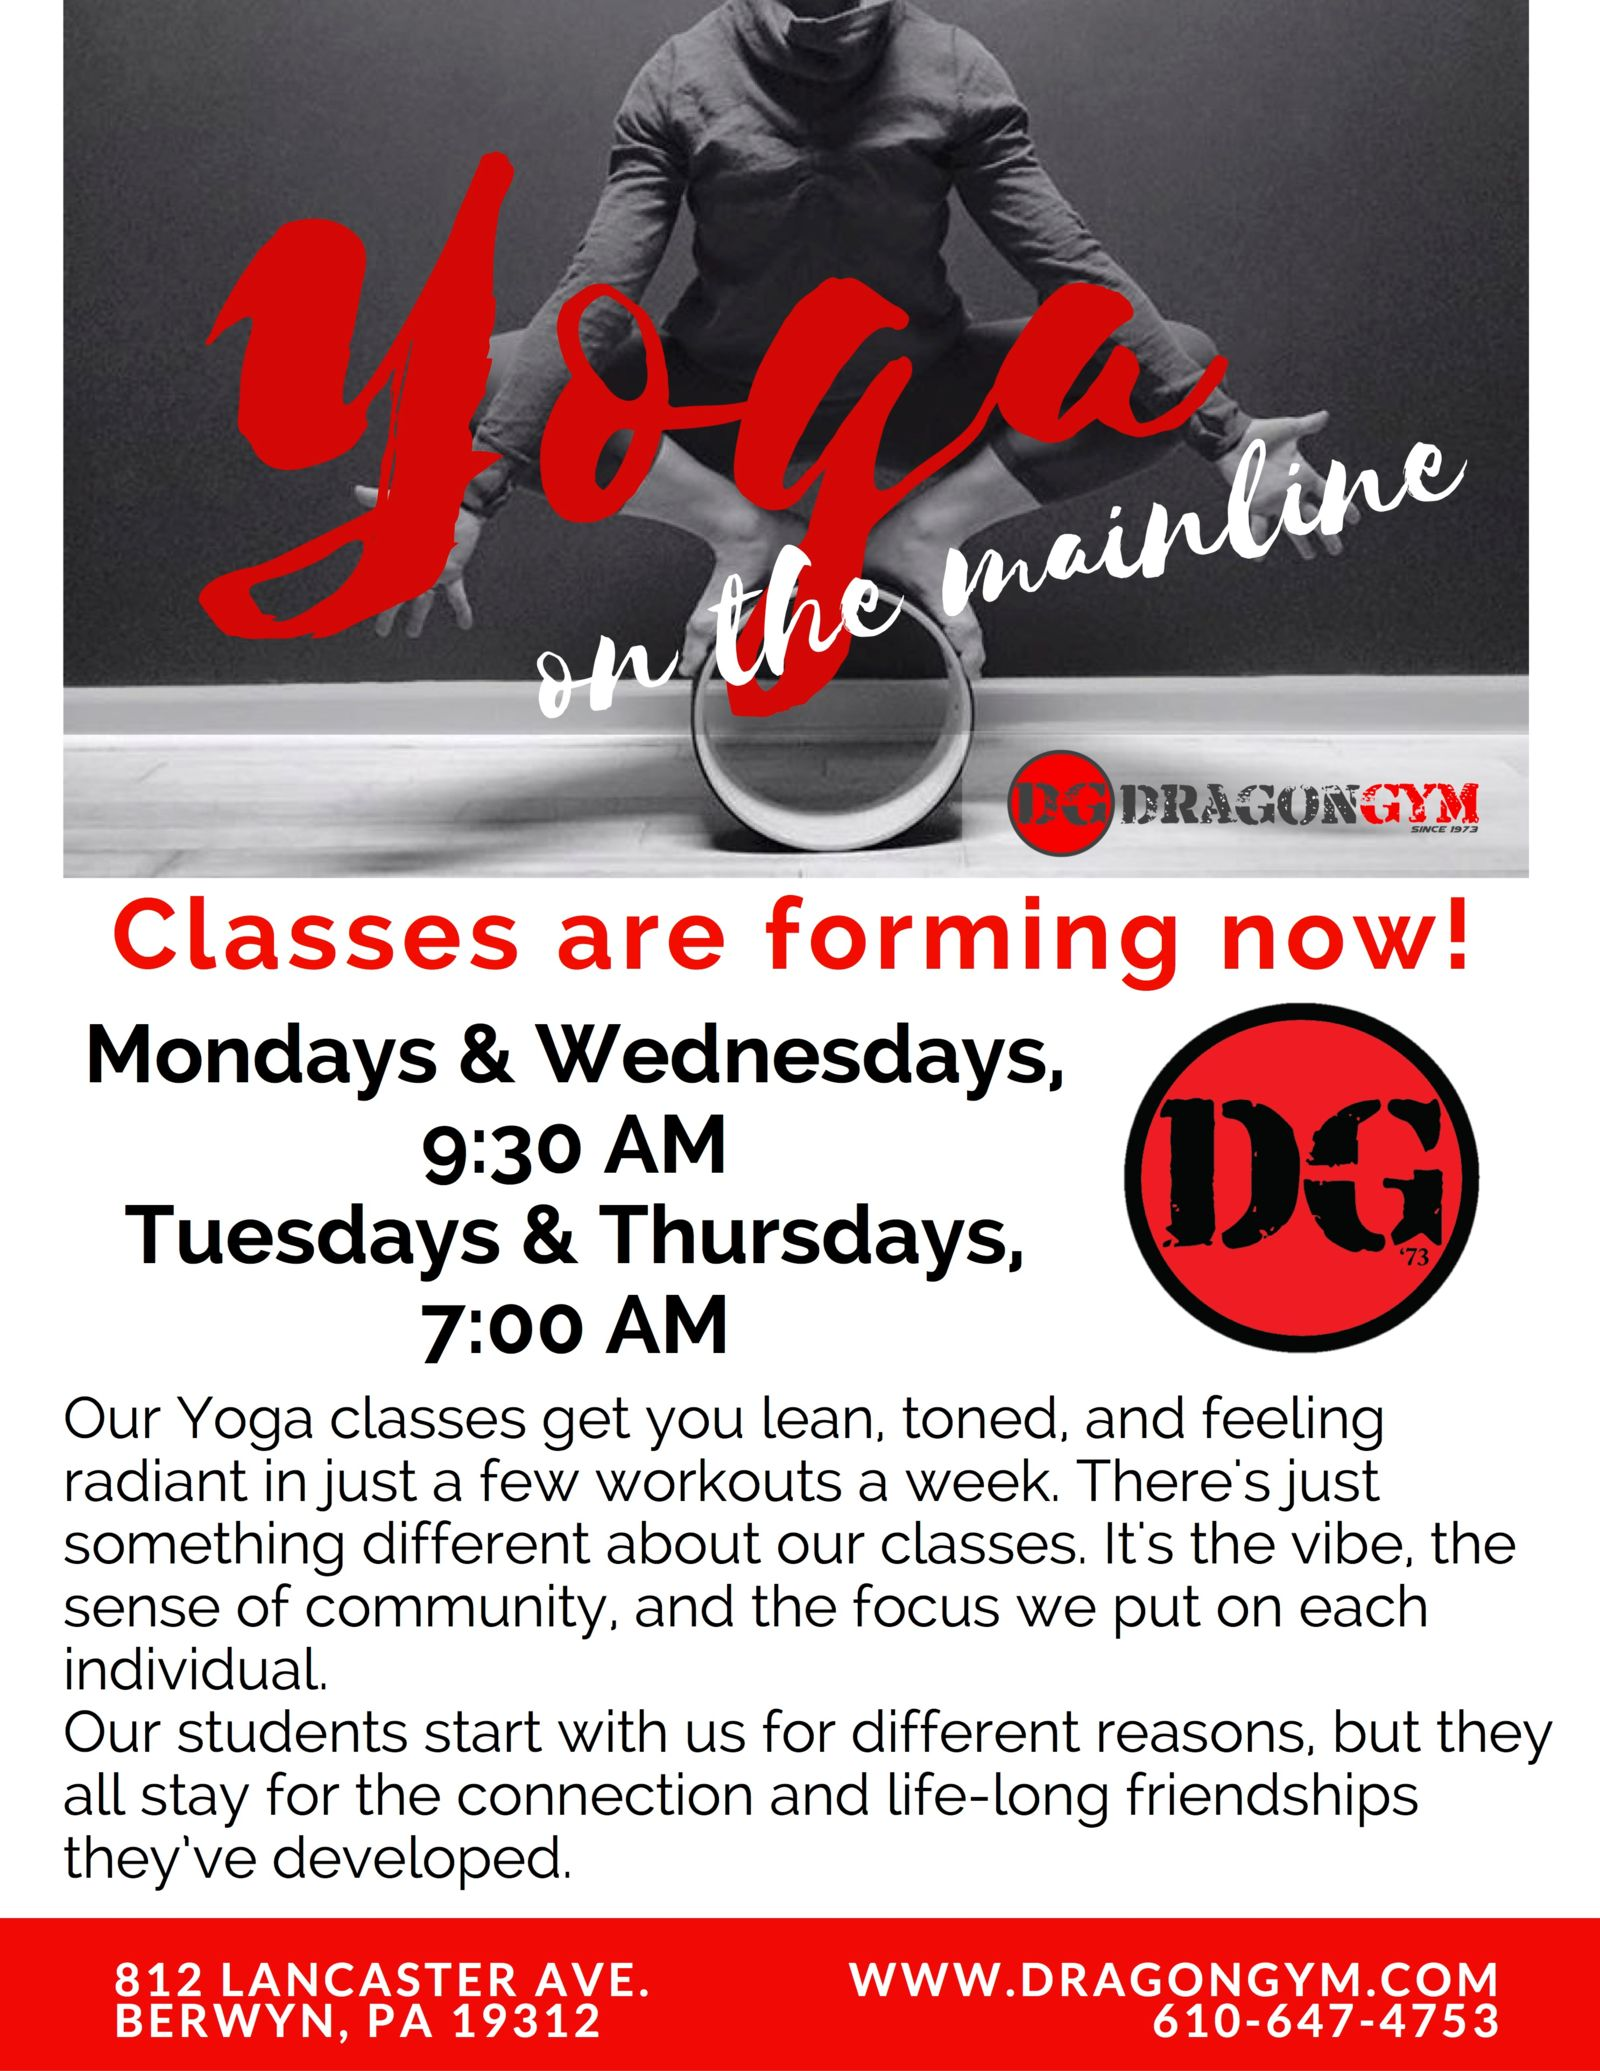 Morning Yoga Classes in Berwyn Pa at Dragon Gym Main Line